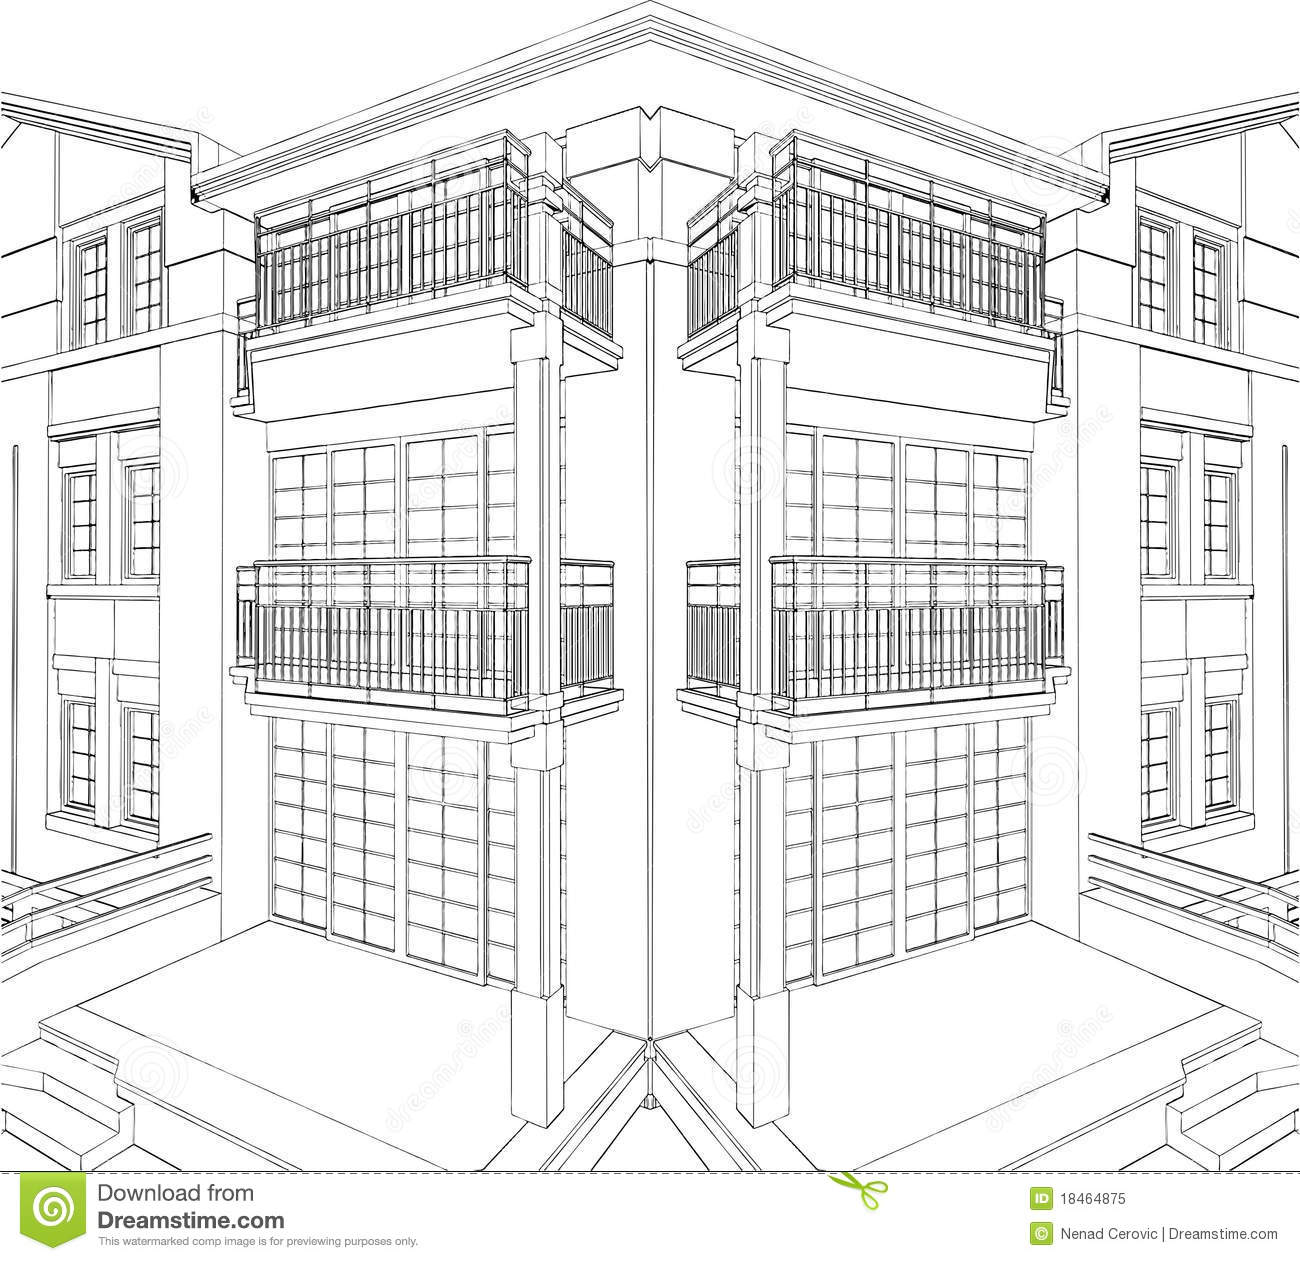 Modern Building orner esidential House Vector 09 oyalty Free ... - ^